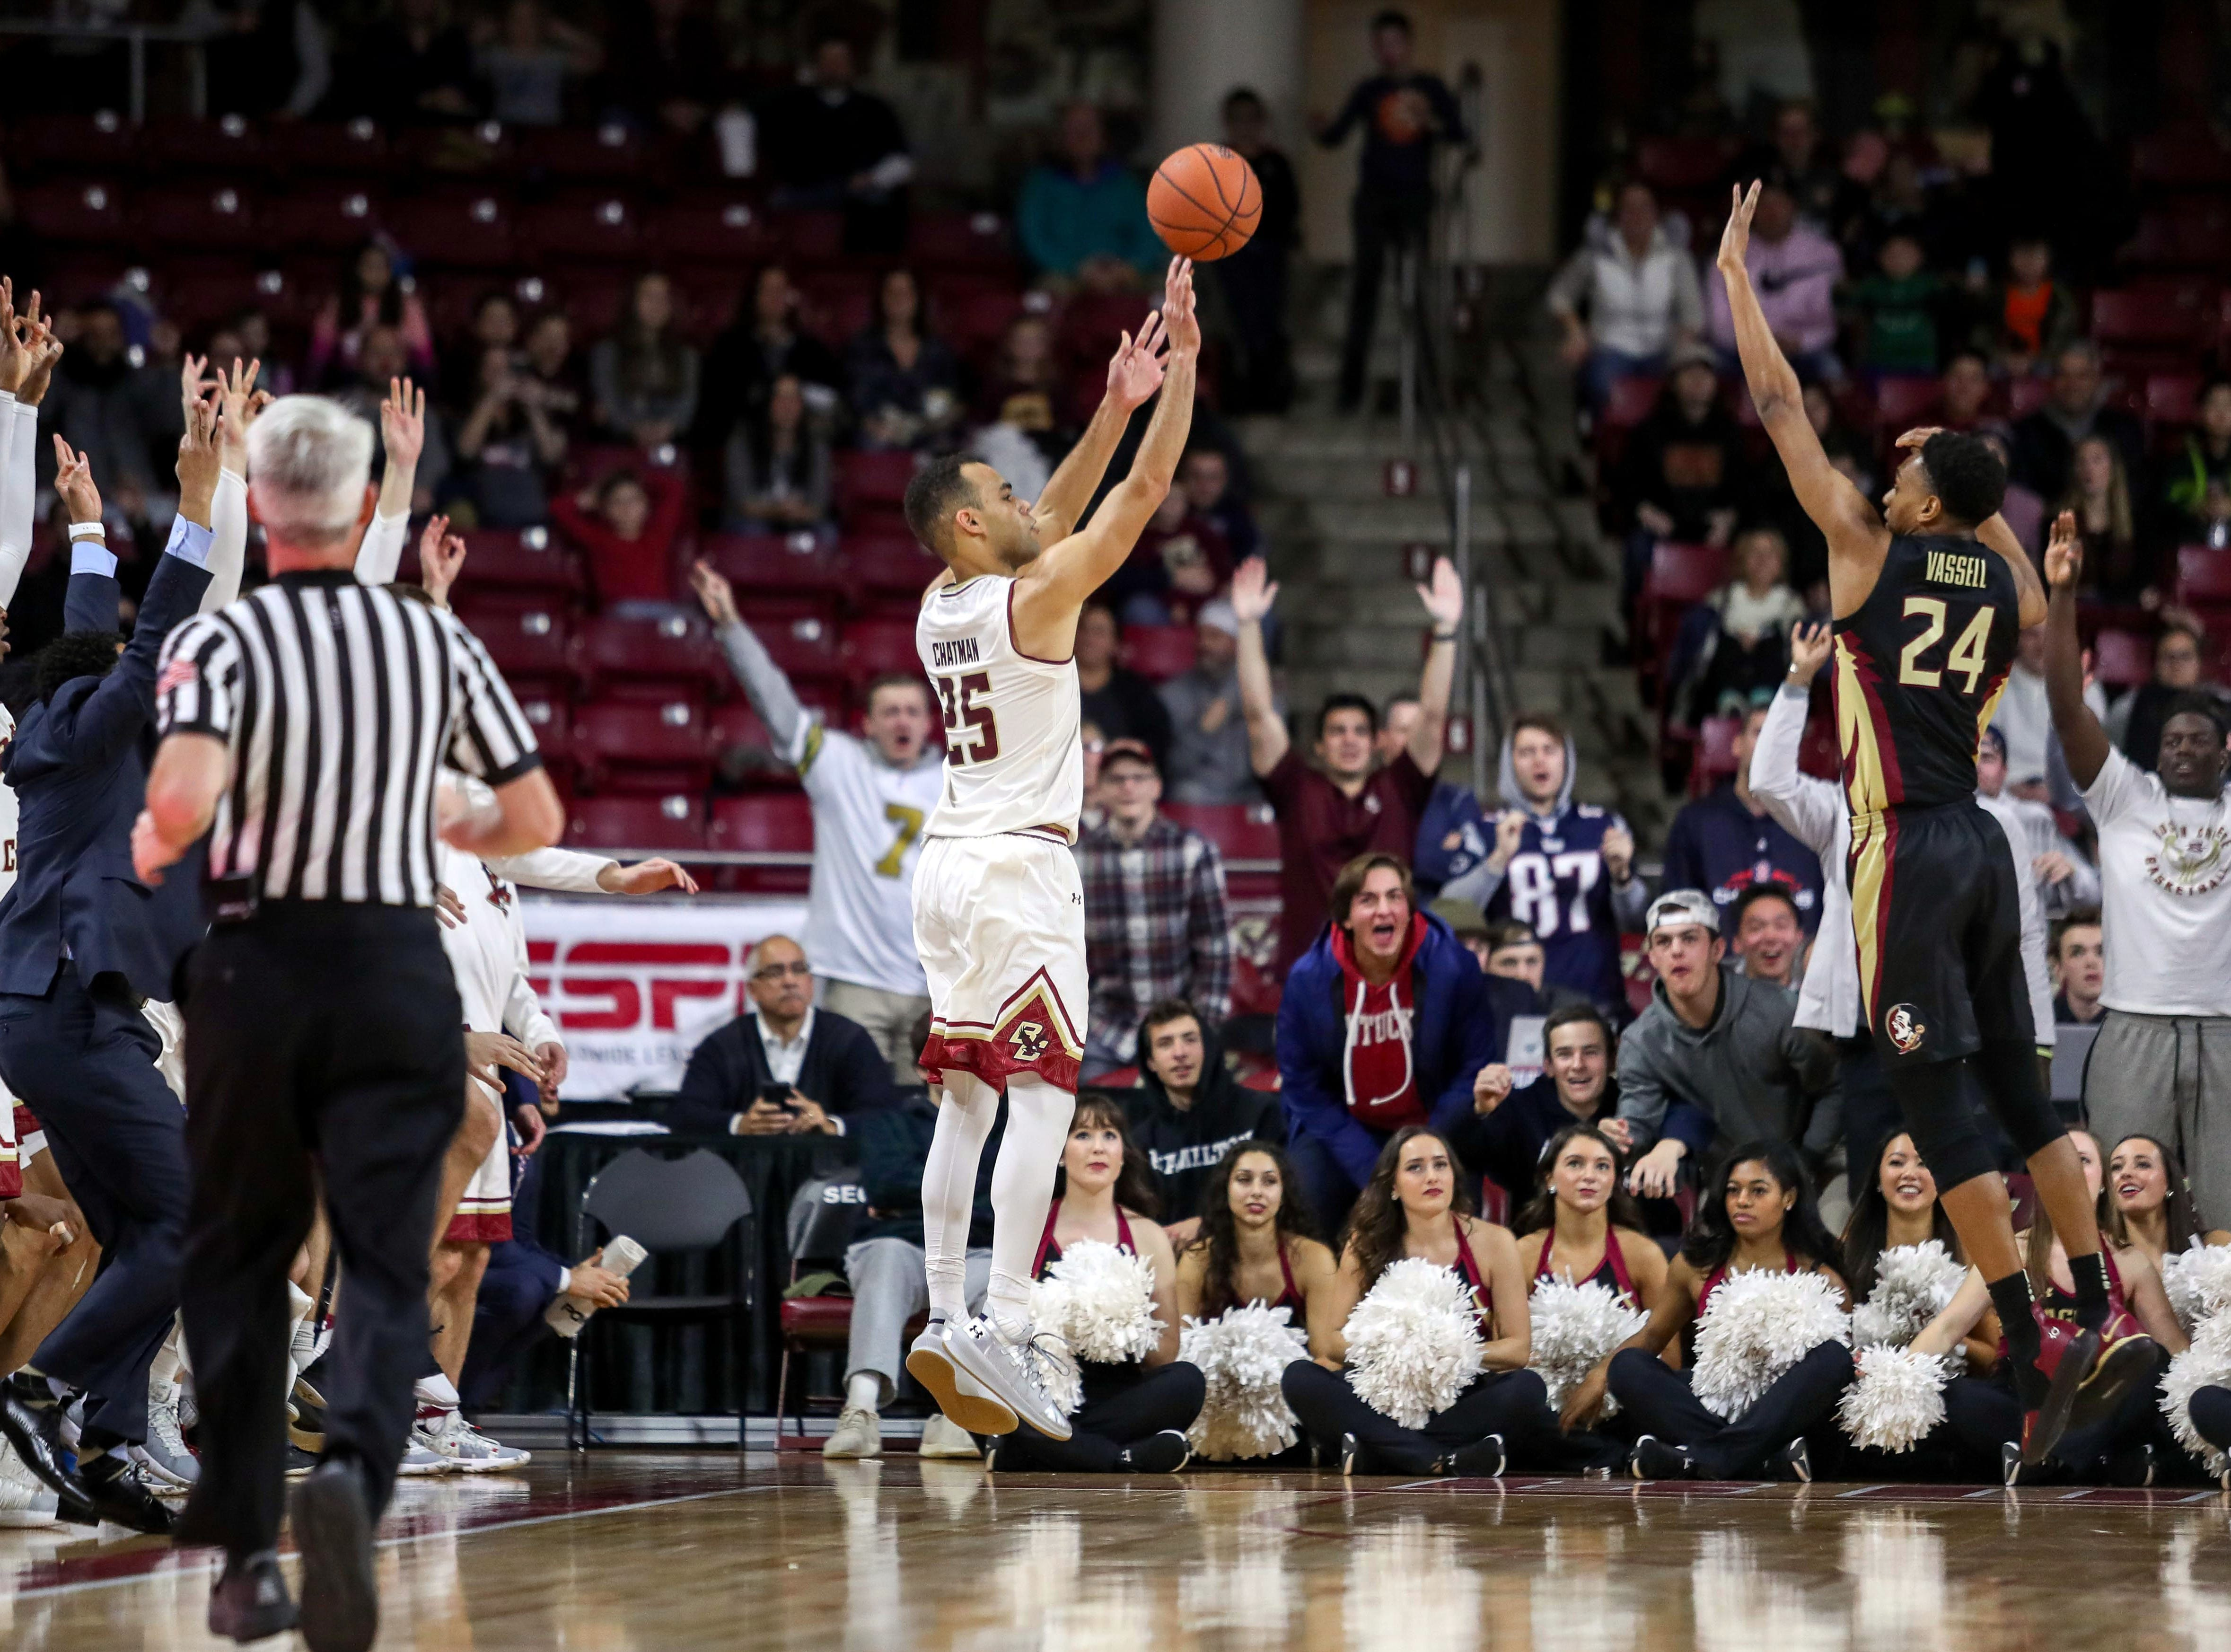 Jan 20, 2019; Chestnut Hill, MA, USA; Boston College Eagles guard Jordan Chatman (25) shoots against Florida State Seminoles guard Devin Vassell (24) during the second half at Conte Forum. Mandatory Credit: Paul Rutherford-USA TODAY Sports